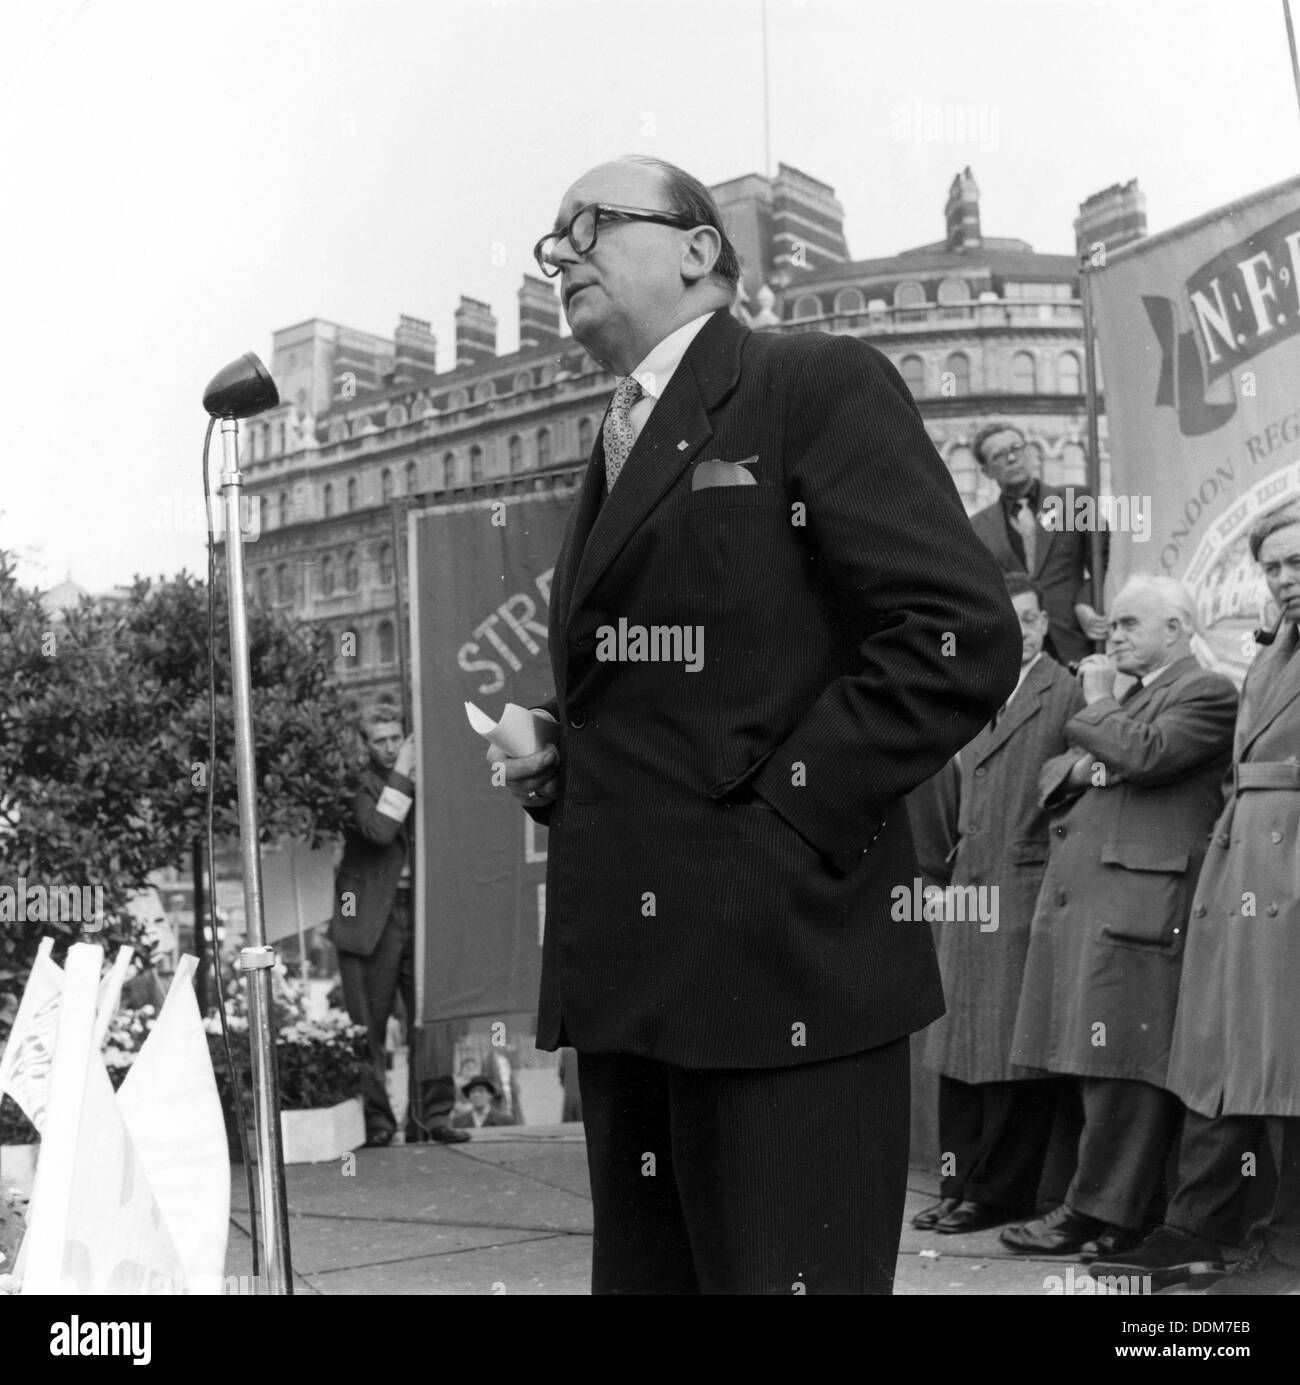 Bob Willis, Member General Council TUC, at London Labour Party Demo against Rent Act, 20 Oct 1957. Artist: Henry Grant - Stock Image